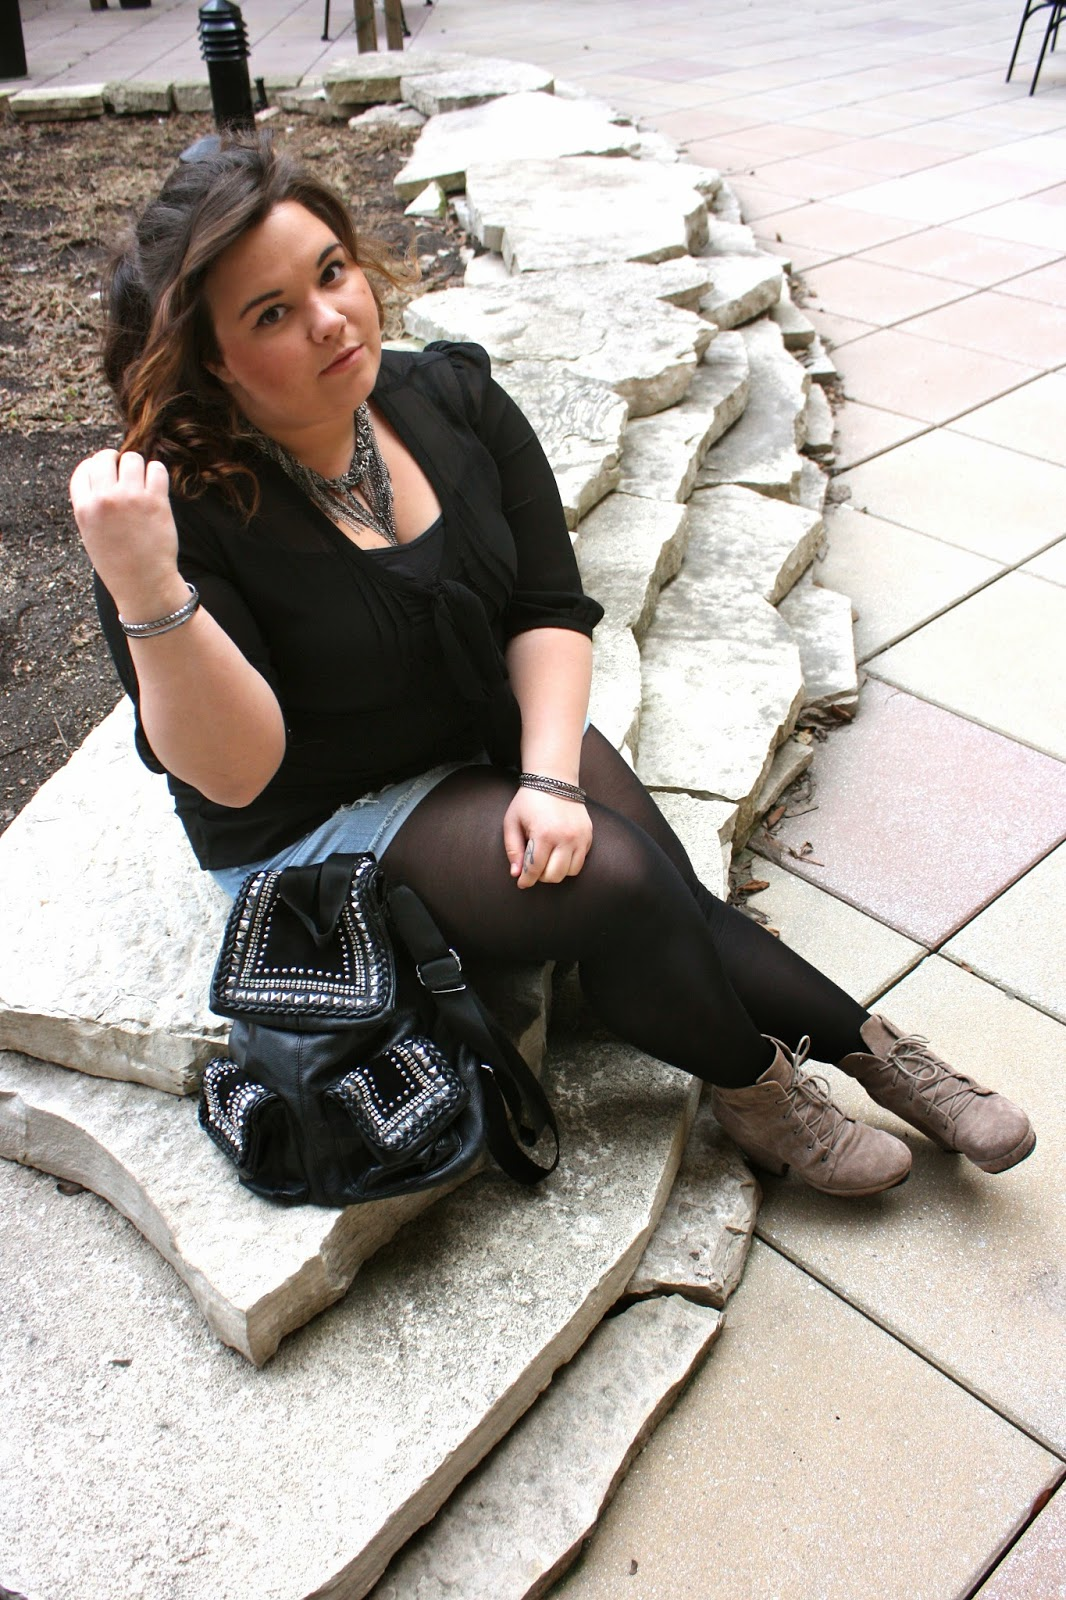 ecote boots, urban outfitters, chiffon blouse, chain necklace, blonde, curly hair, ombre, pony tail, ankle boots, studded backpack, shorts, plus size fashion blogger, natalie craig, natalie in the city, chicago blogger network, chicago fashion